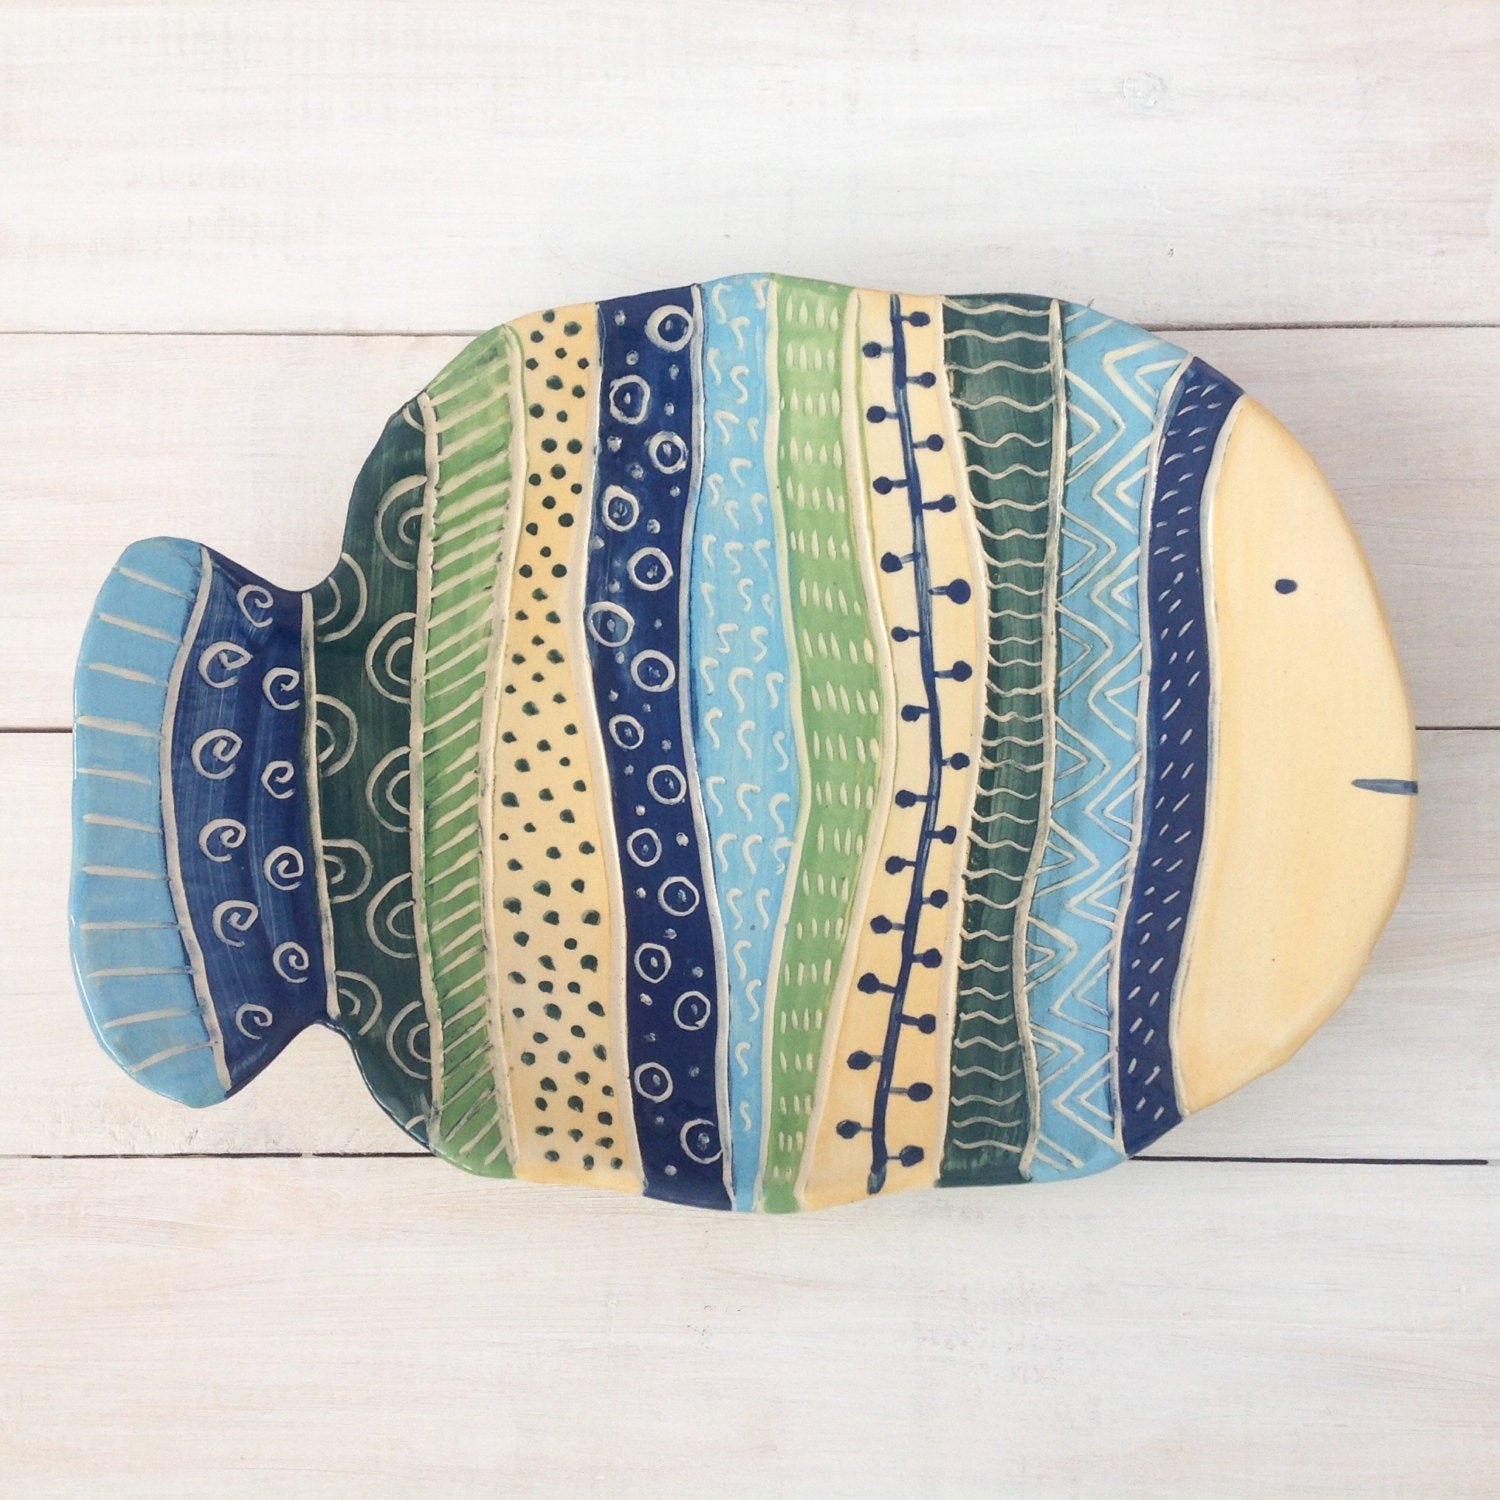 Etsy Pertaining To Well Known Ceramic Blue Fish Plate Wall Decor (View 5 of 20)